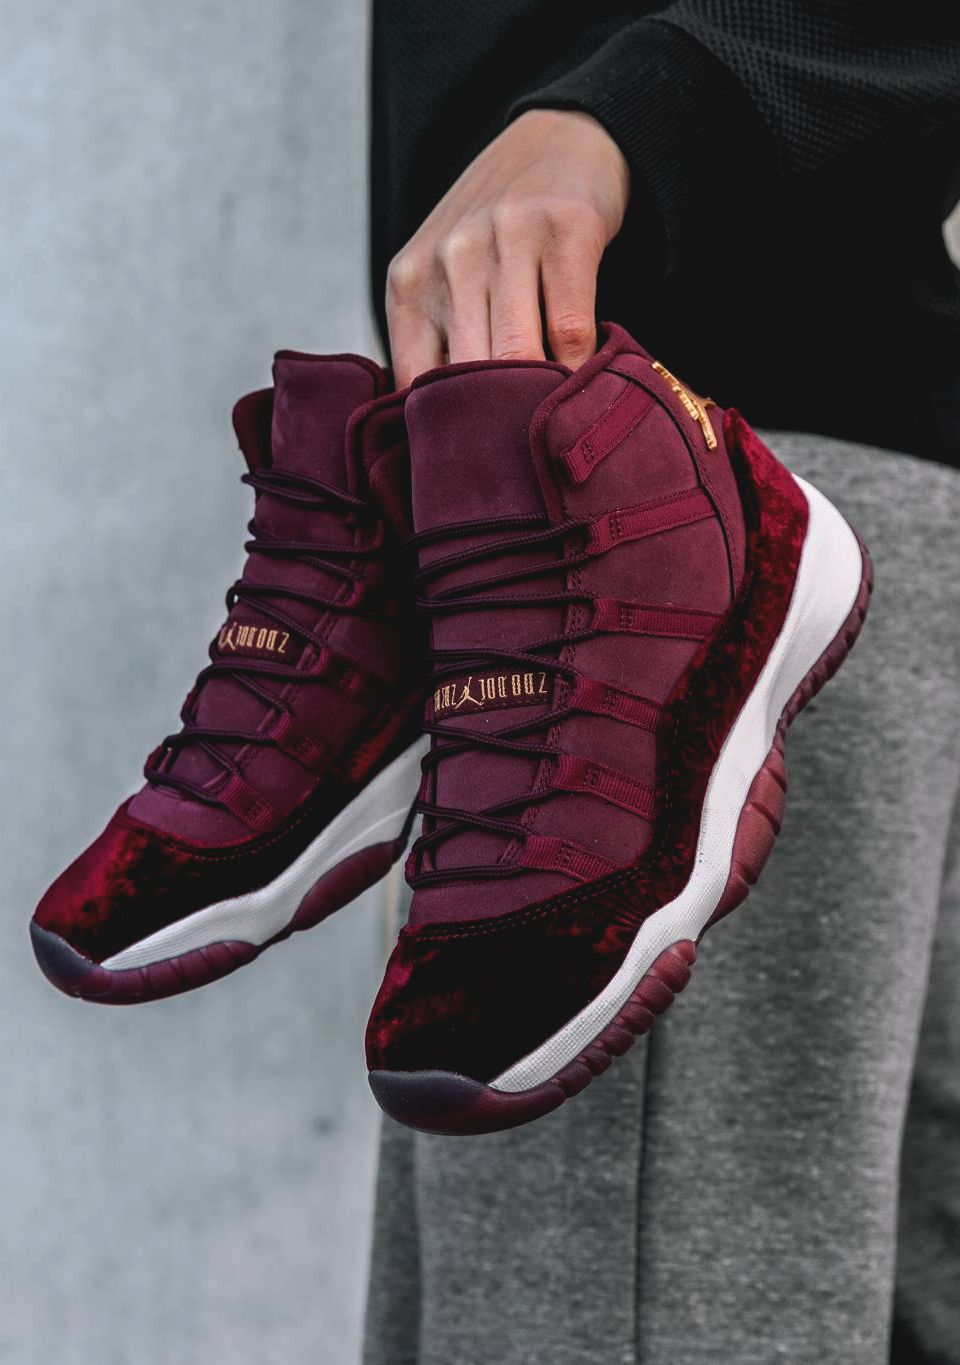 buy online 6a3c0 4fc3f Air Jordan 11 Retro RL GG Heiress  Red Velvet  (via Overkill)